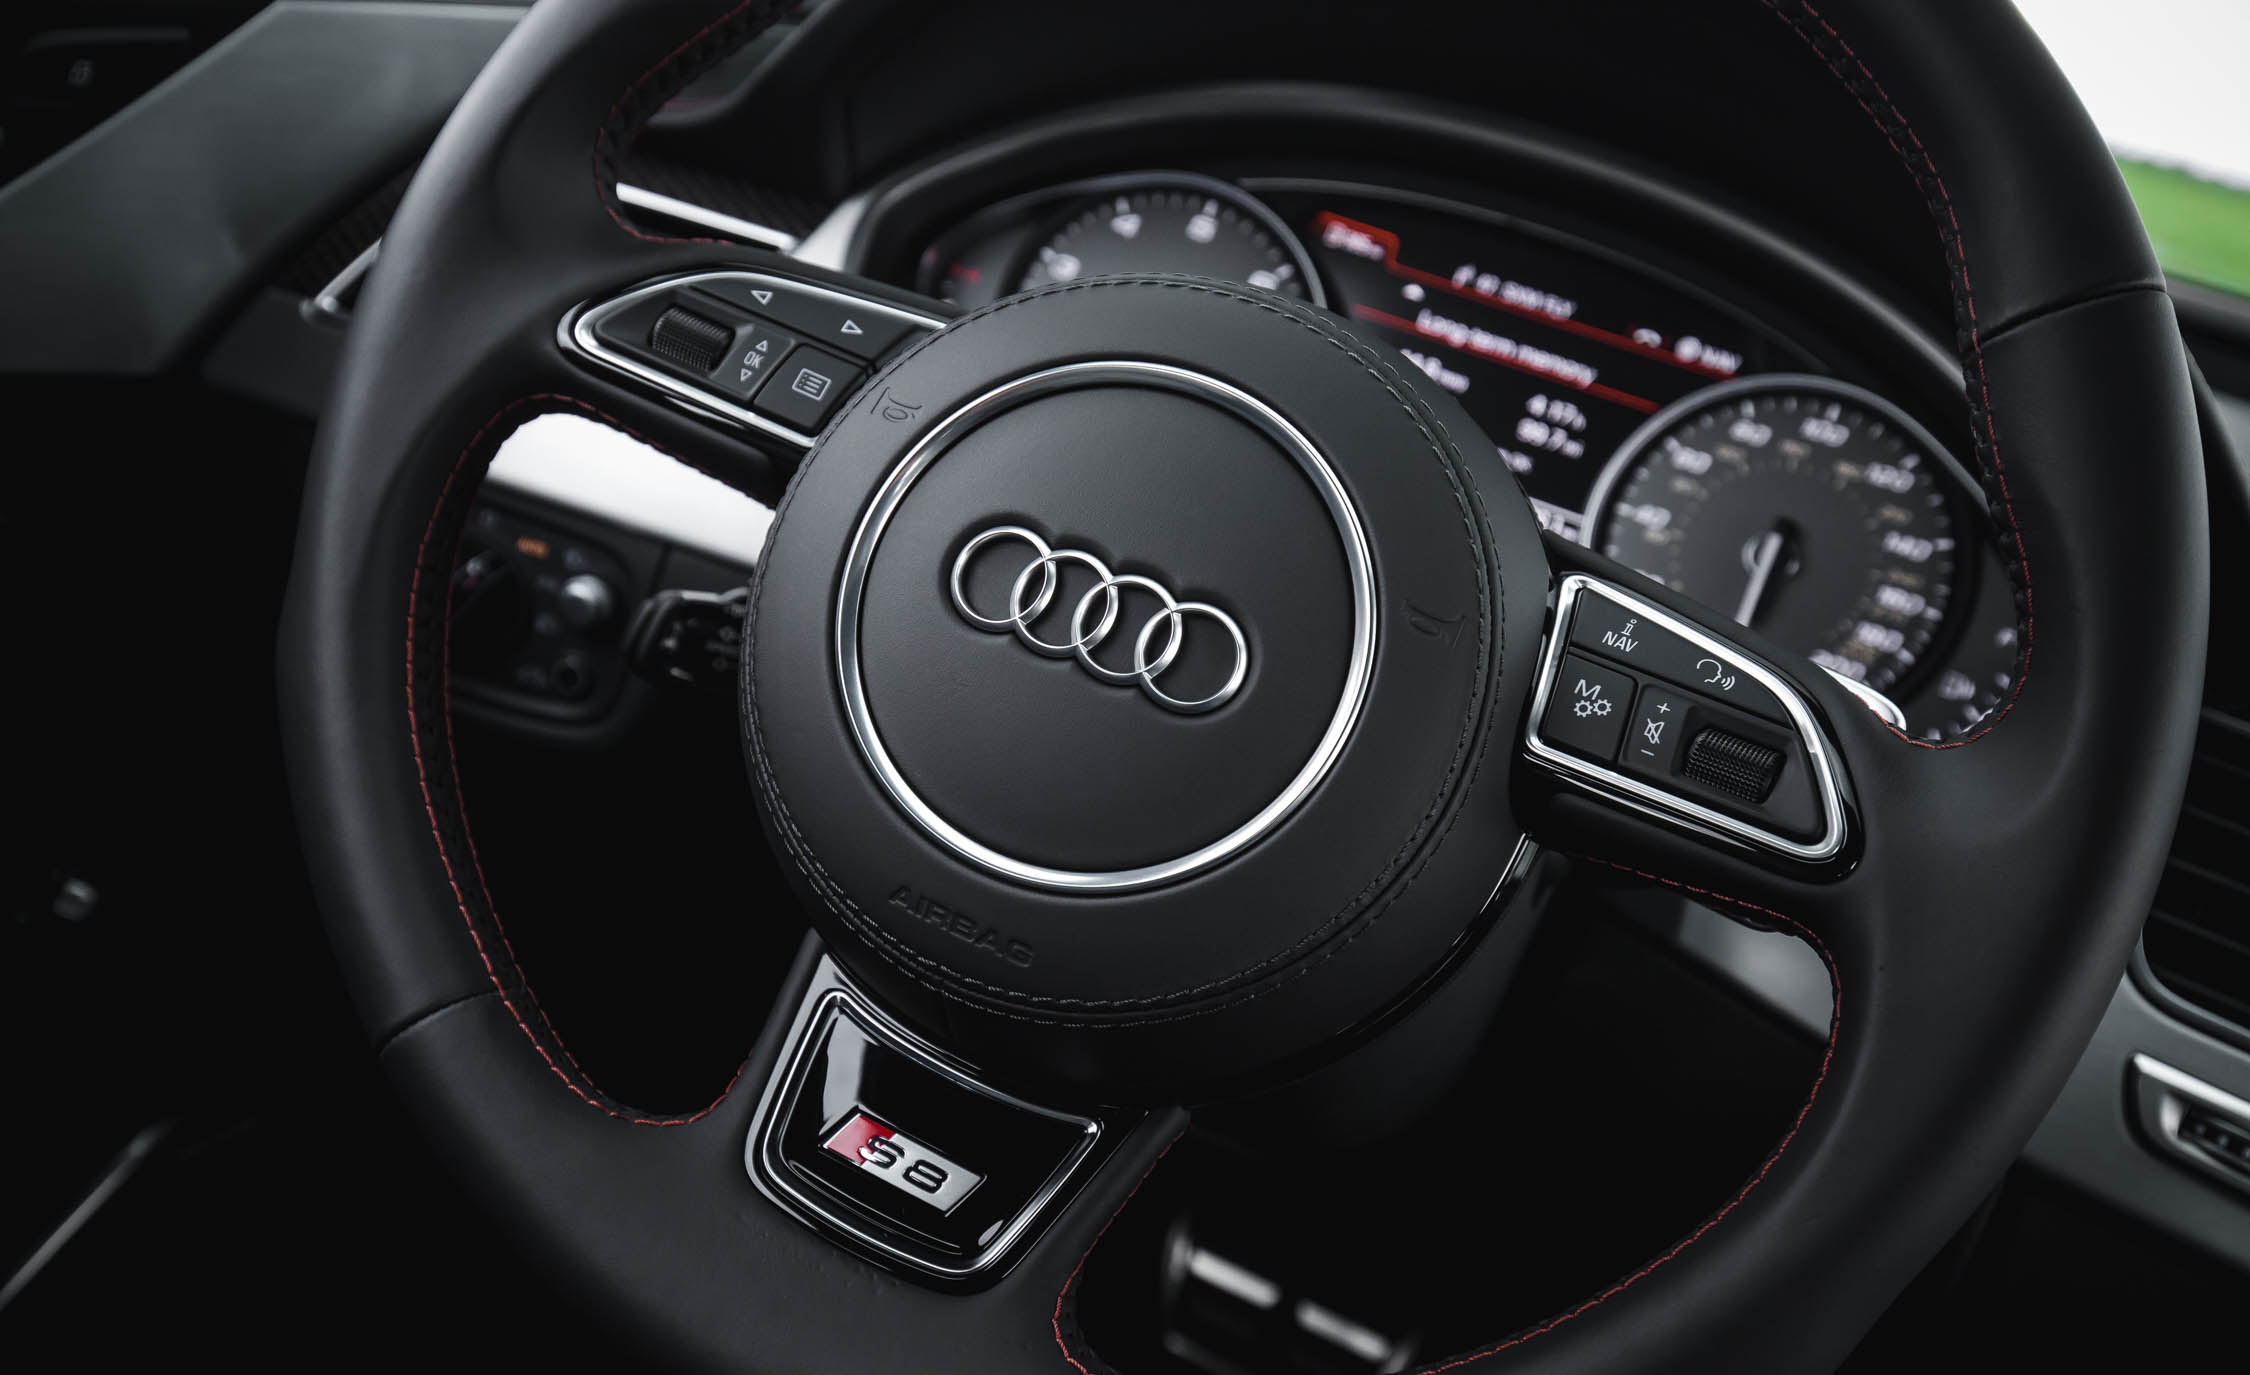 2017 Audi S8 Plus Interior Steering Wheel Details (Photo 22 of 36)